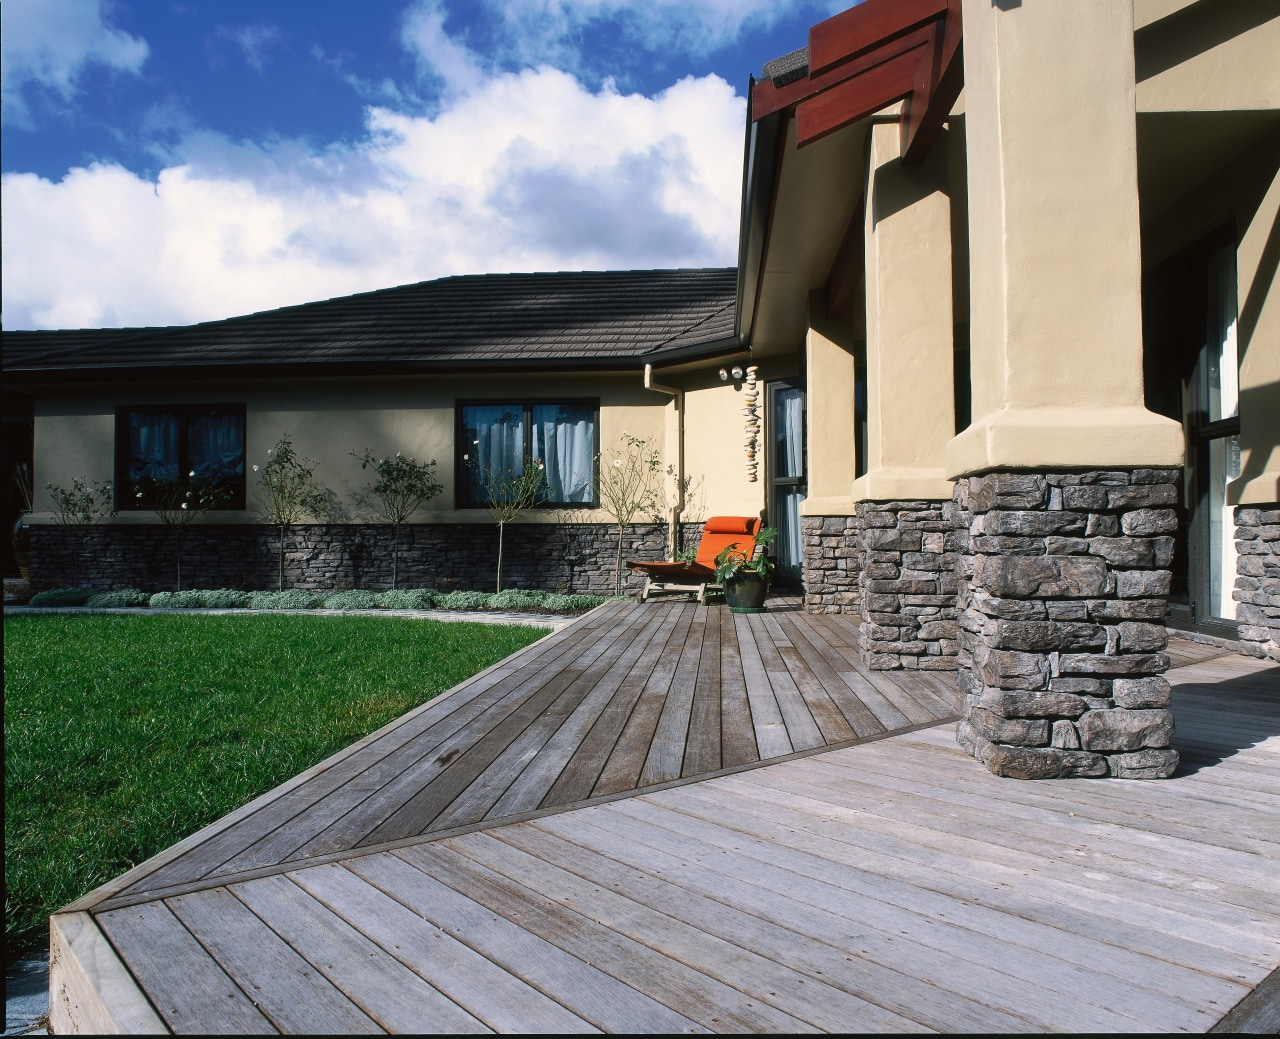 House with cream cladding and dark grey schist deck, home, house, outdoor structure, property, real estate, roof, walkway, window, gray, black